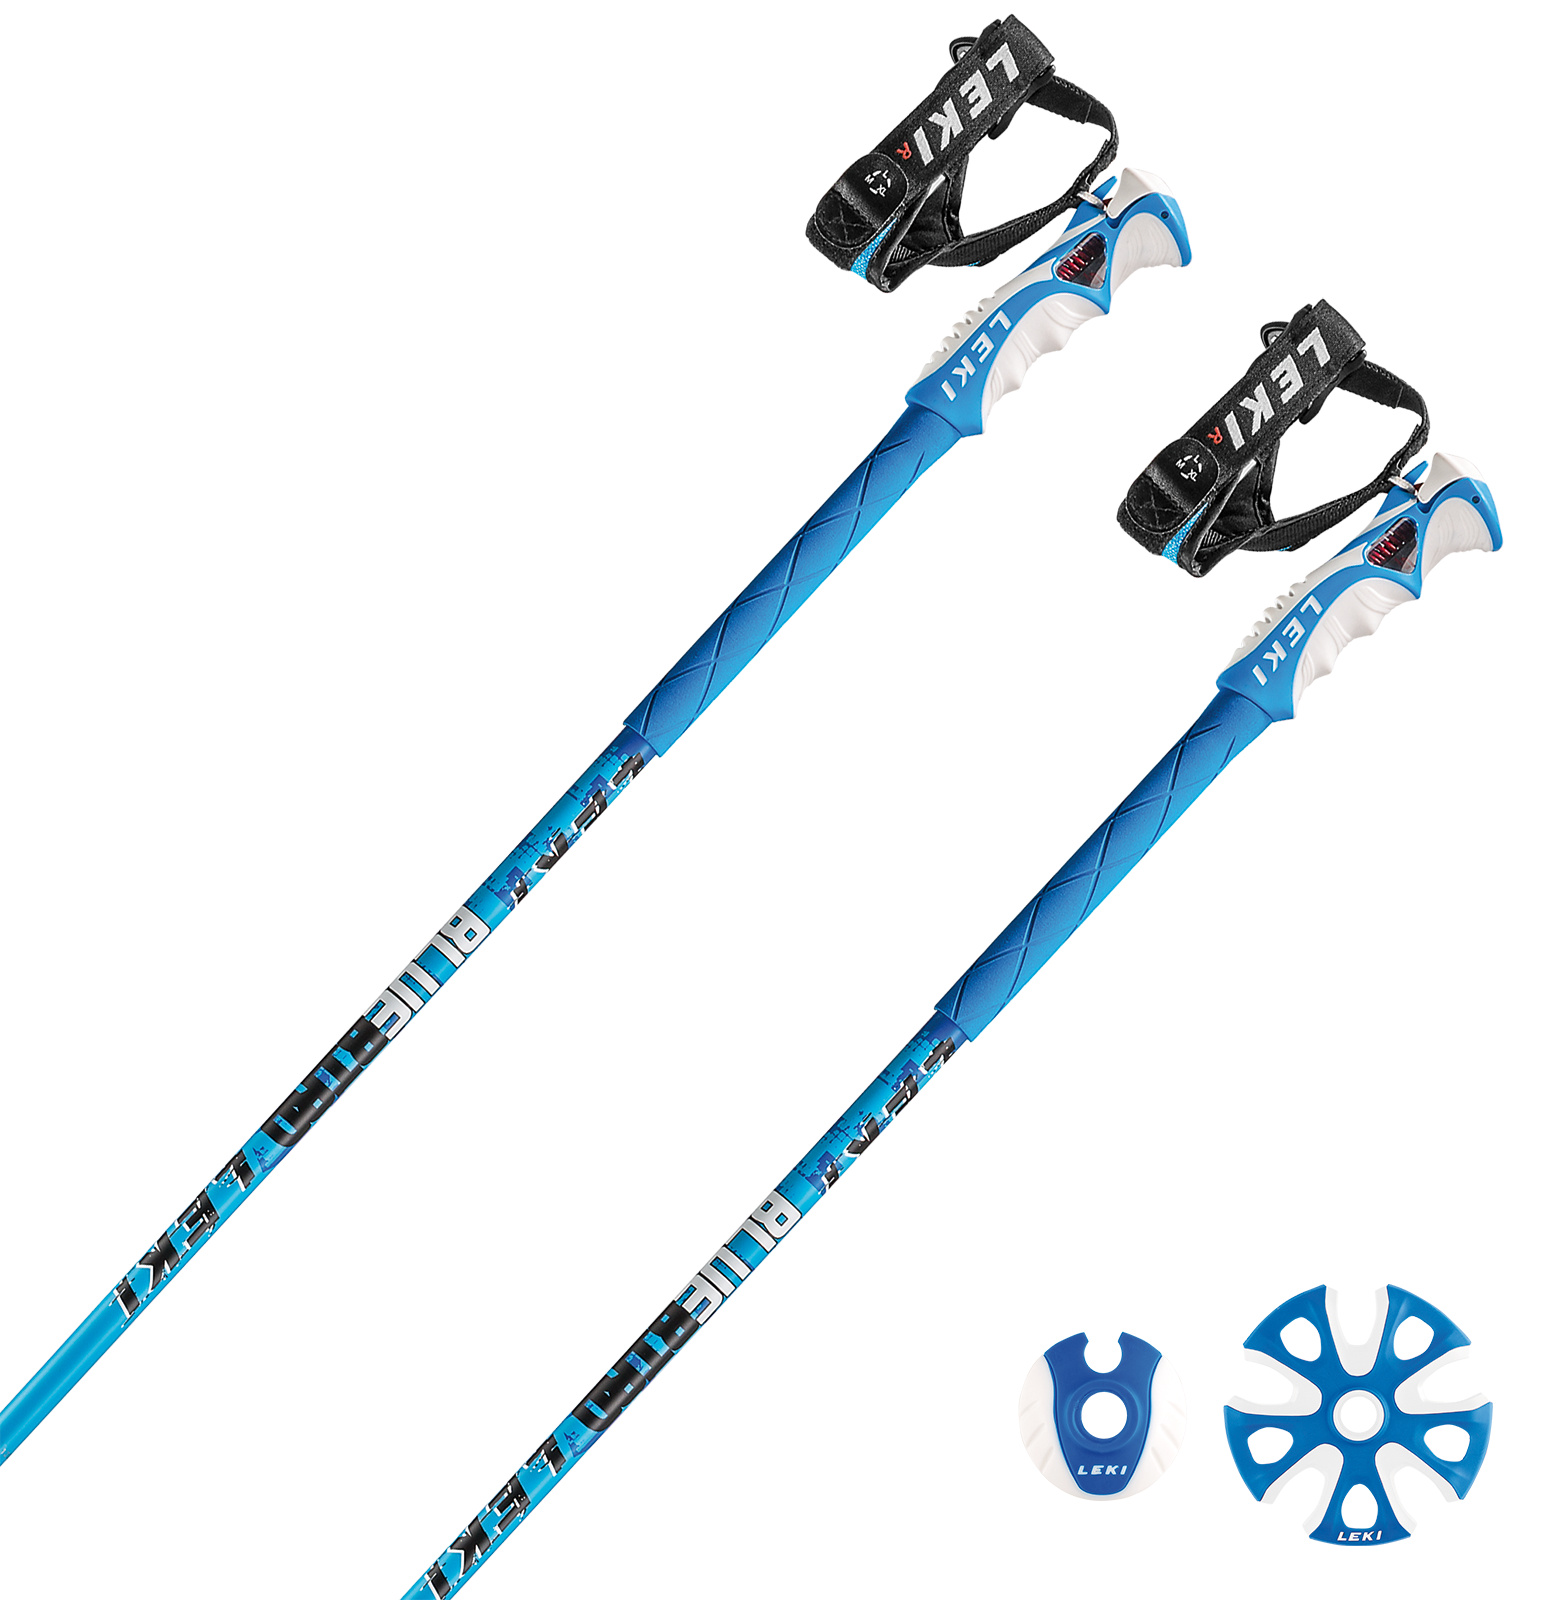 Leki Blue Bird Carbon S